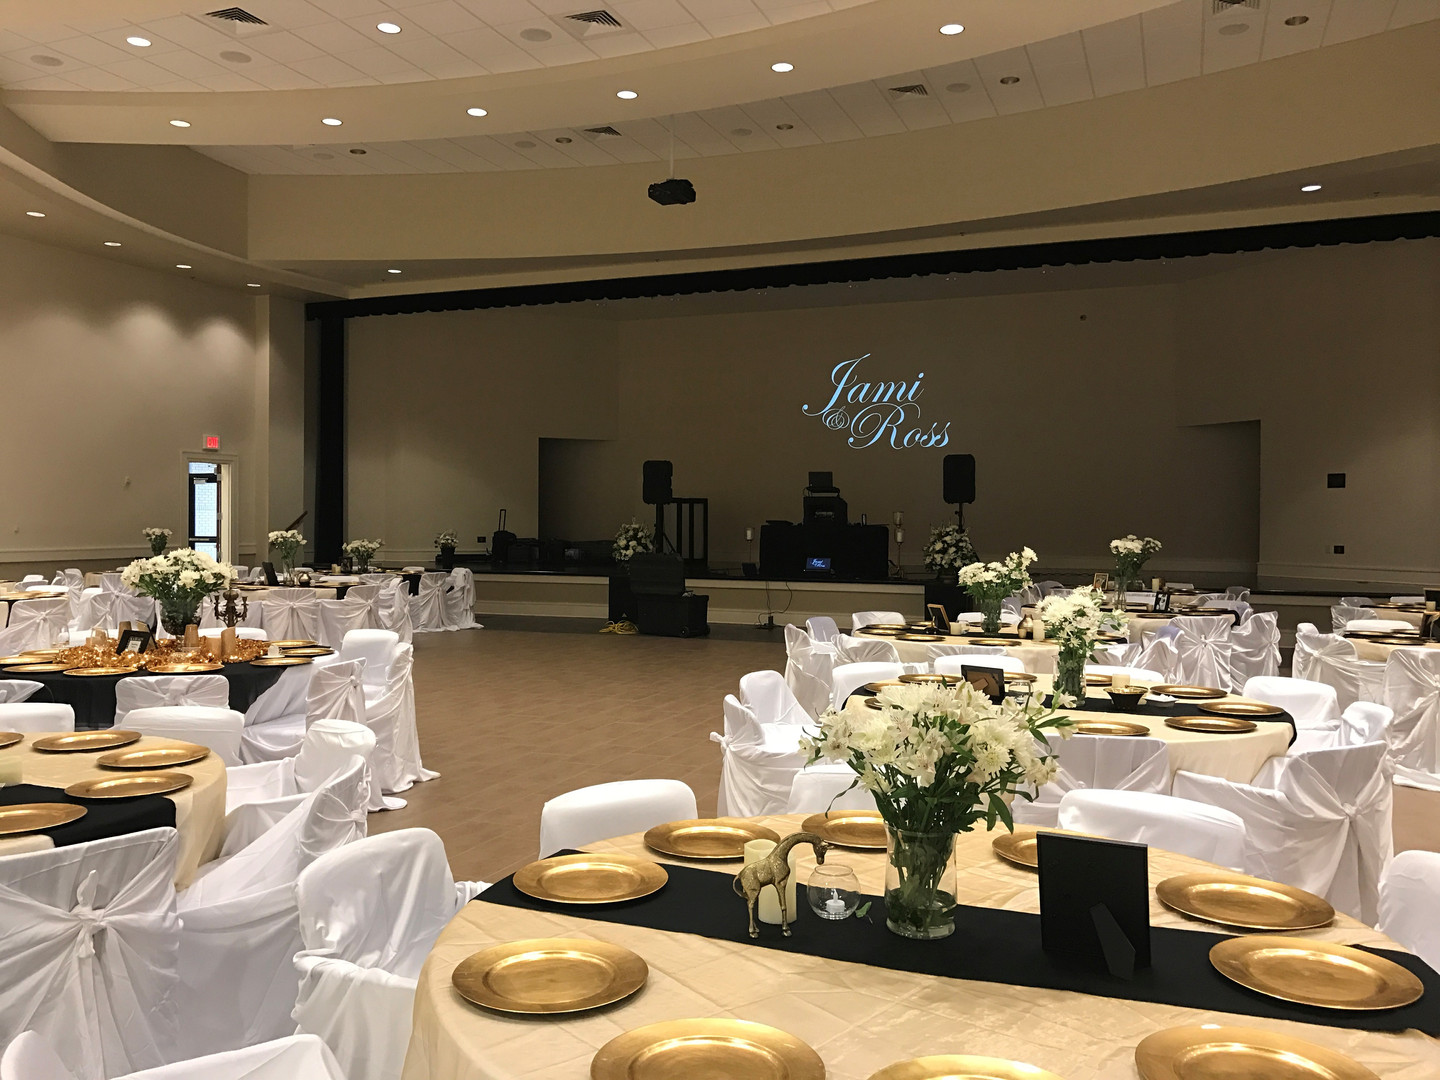 spanish fort community center multi-purpose room set up for a wedding reception - this couple has their name projected on the stage wall